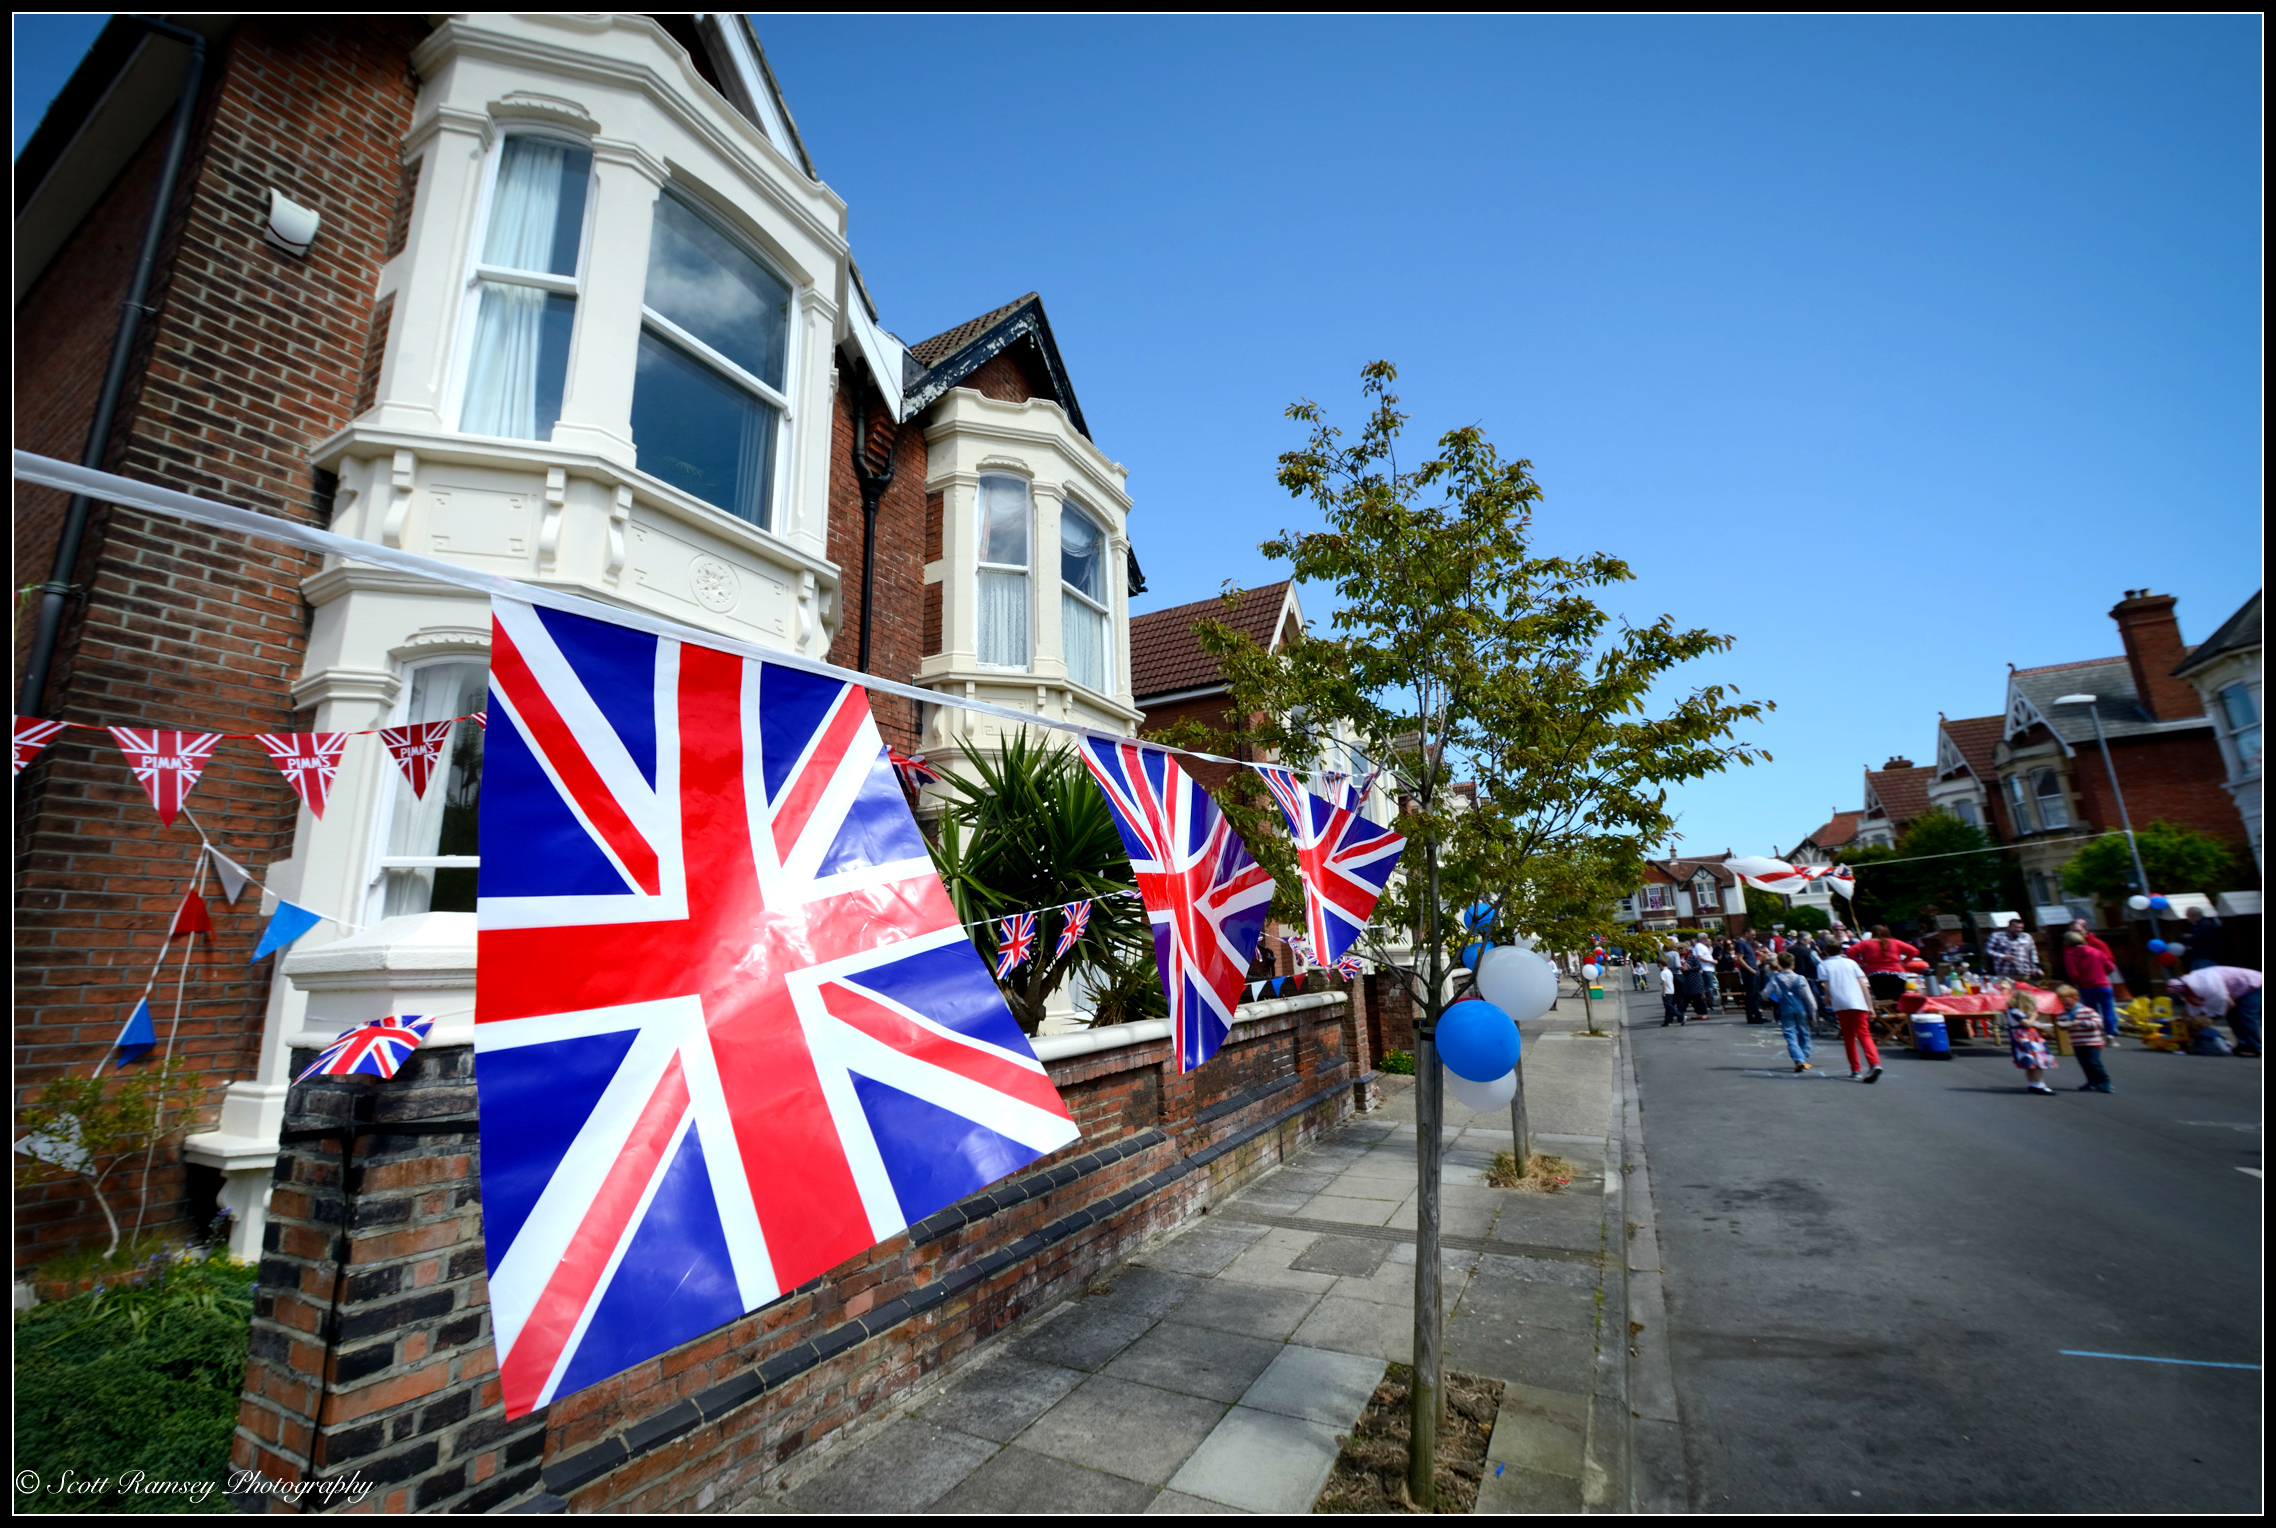 Union jack flags hangoutside residents homes in Nettlecombe Avenue, Southsea, Portsmouth, UK during a VE day 70th anniversary street party. © Scott Ramsey Photography.